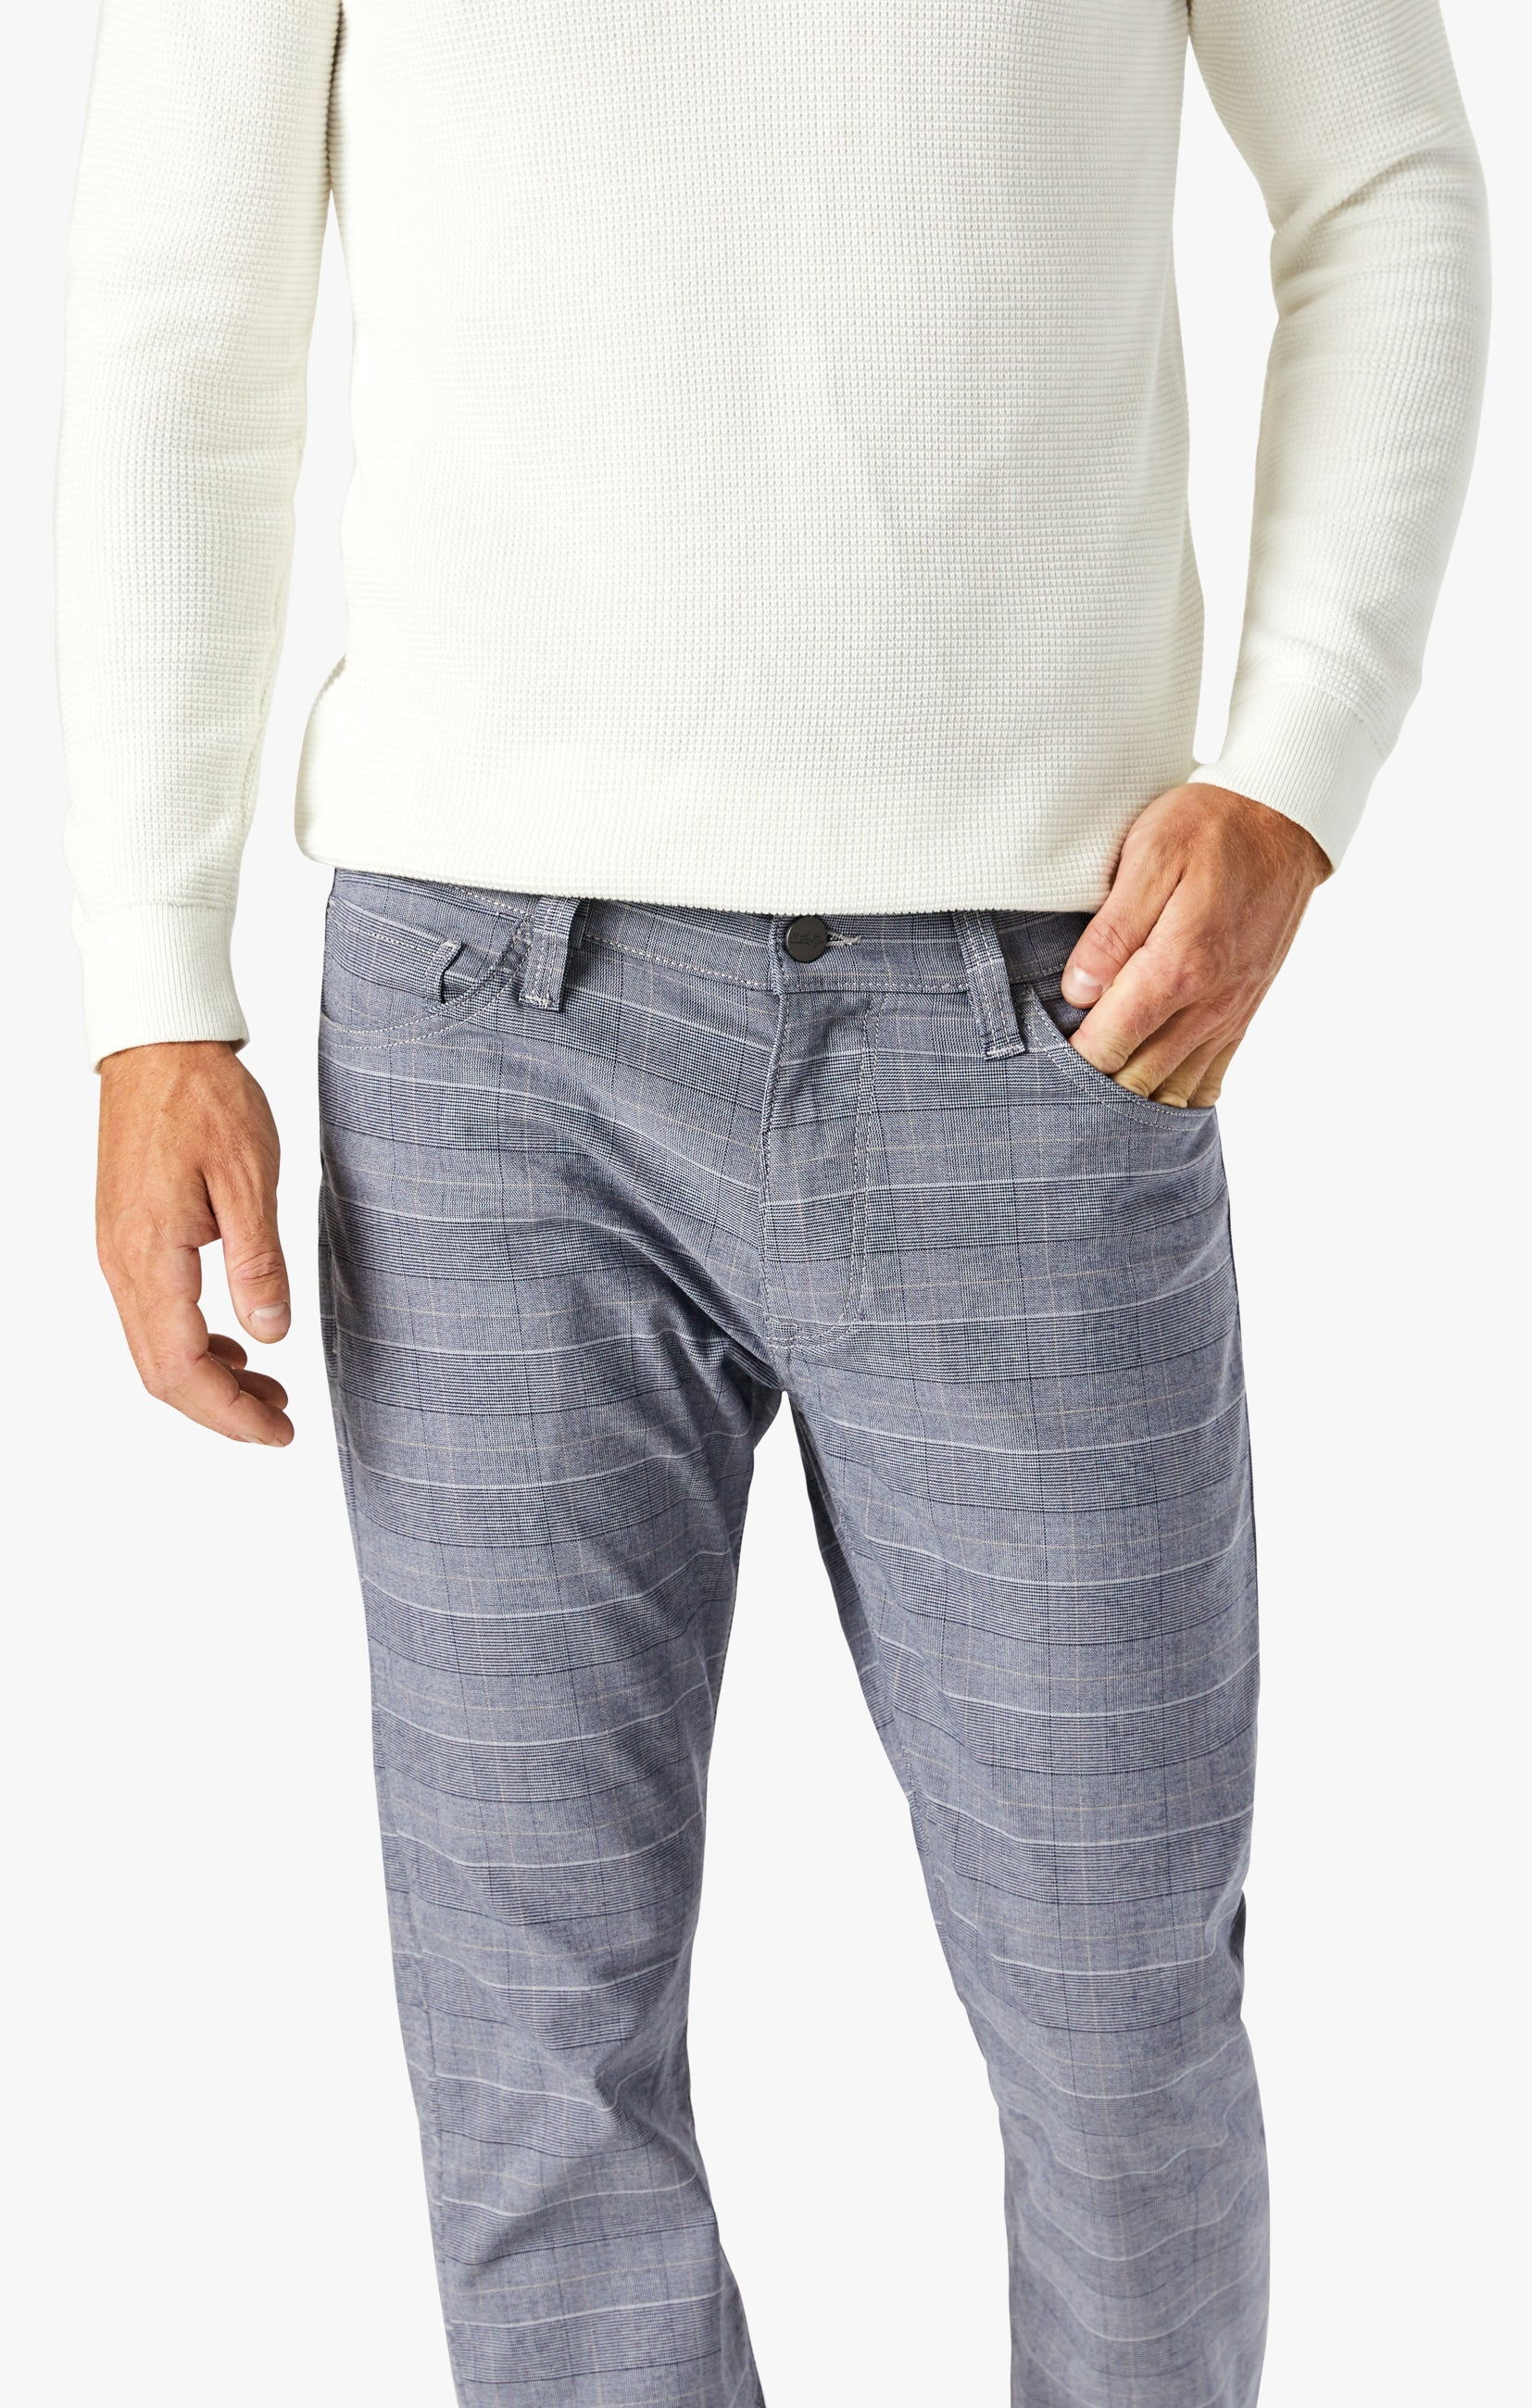 Courage Straight Leg Pants In Anthracite Checked Image 6